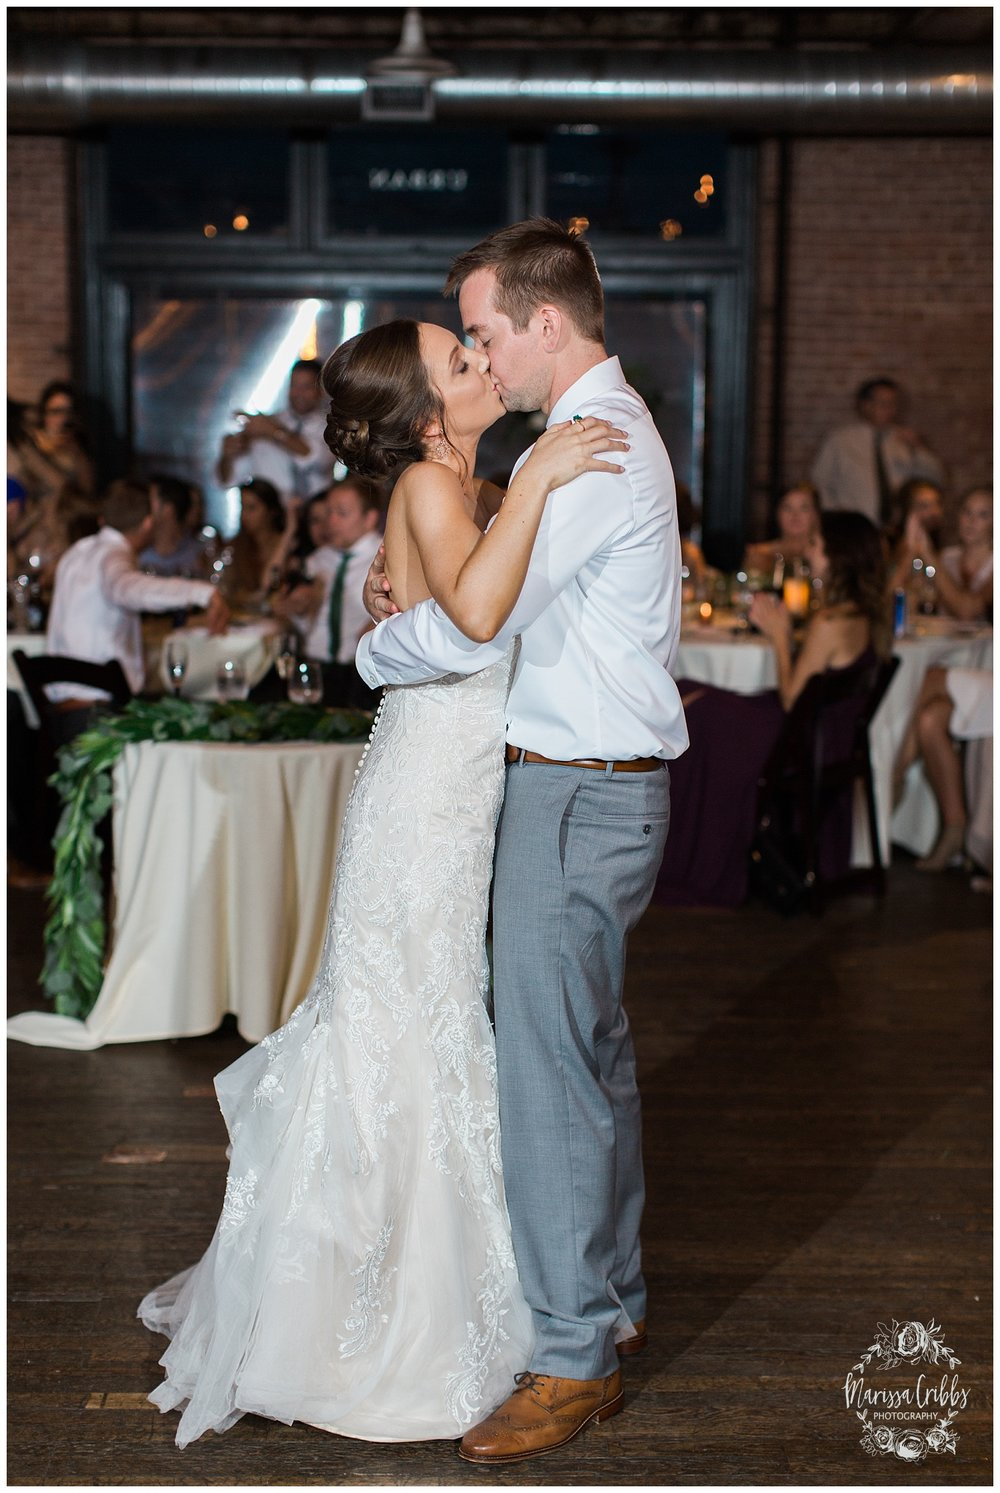 FEASTS OF FANCY KC WEDDING | THE HOBBS WEDDING KANSAS CITY | MARISSA CRIBBS PHOTOGRAPHY_2273.jpg